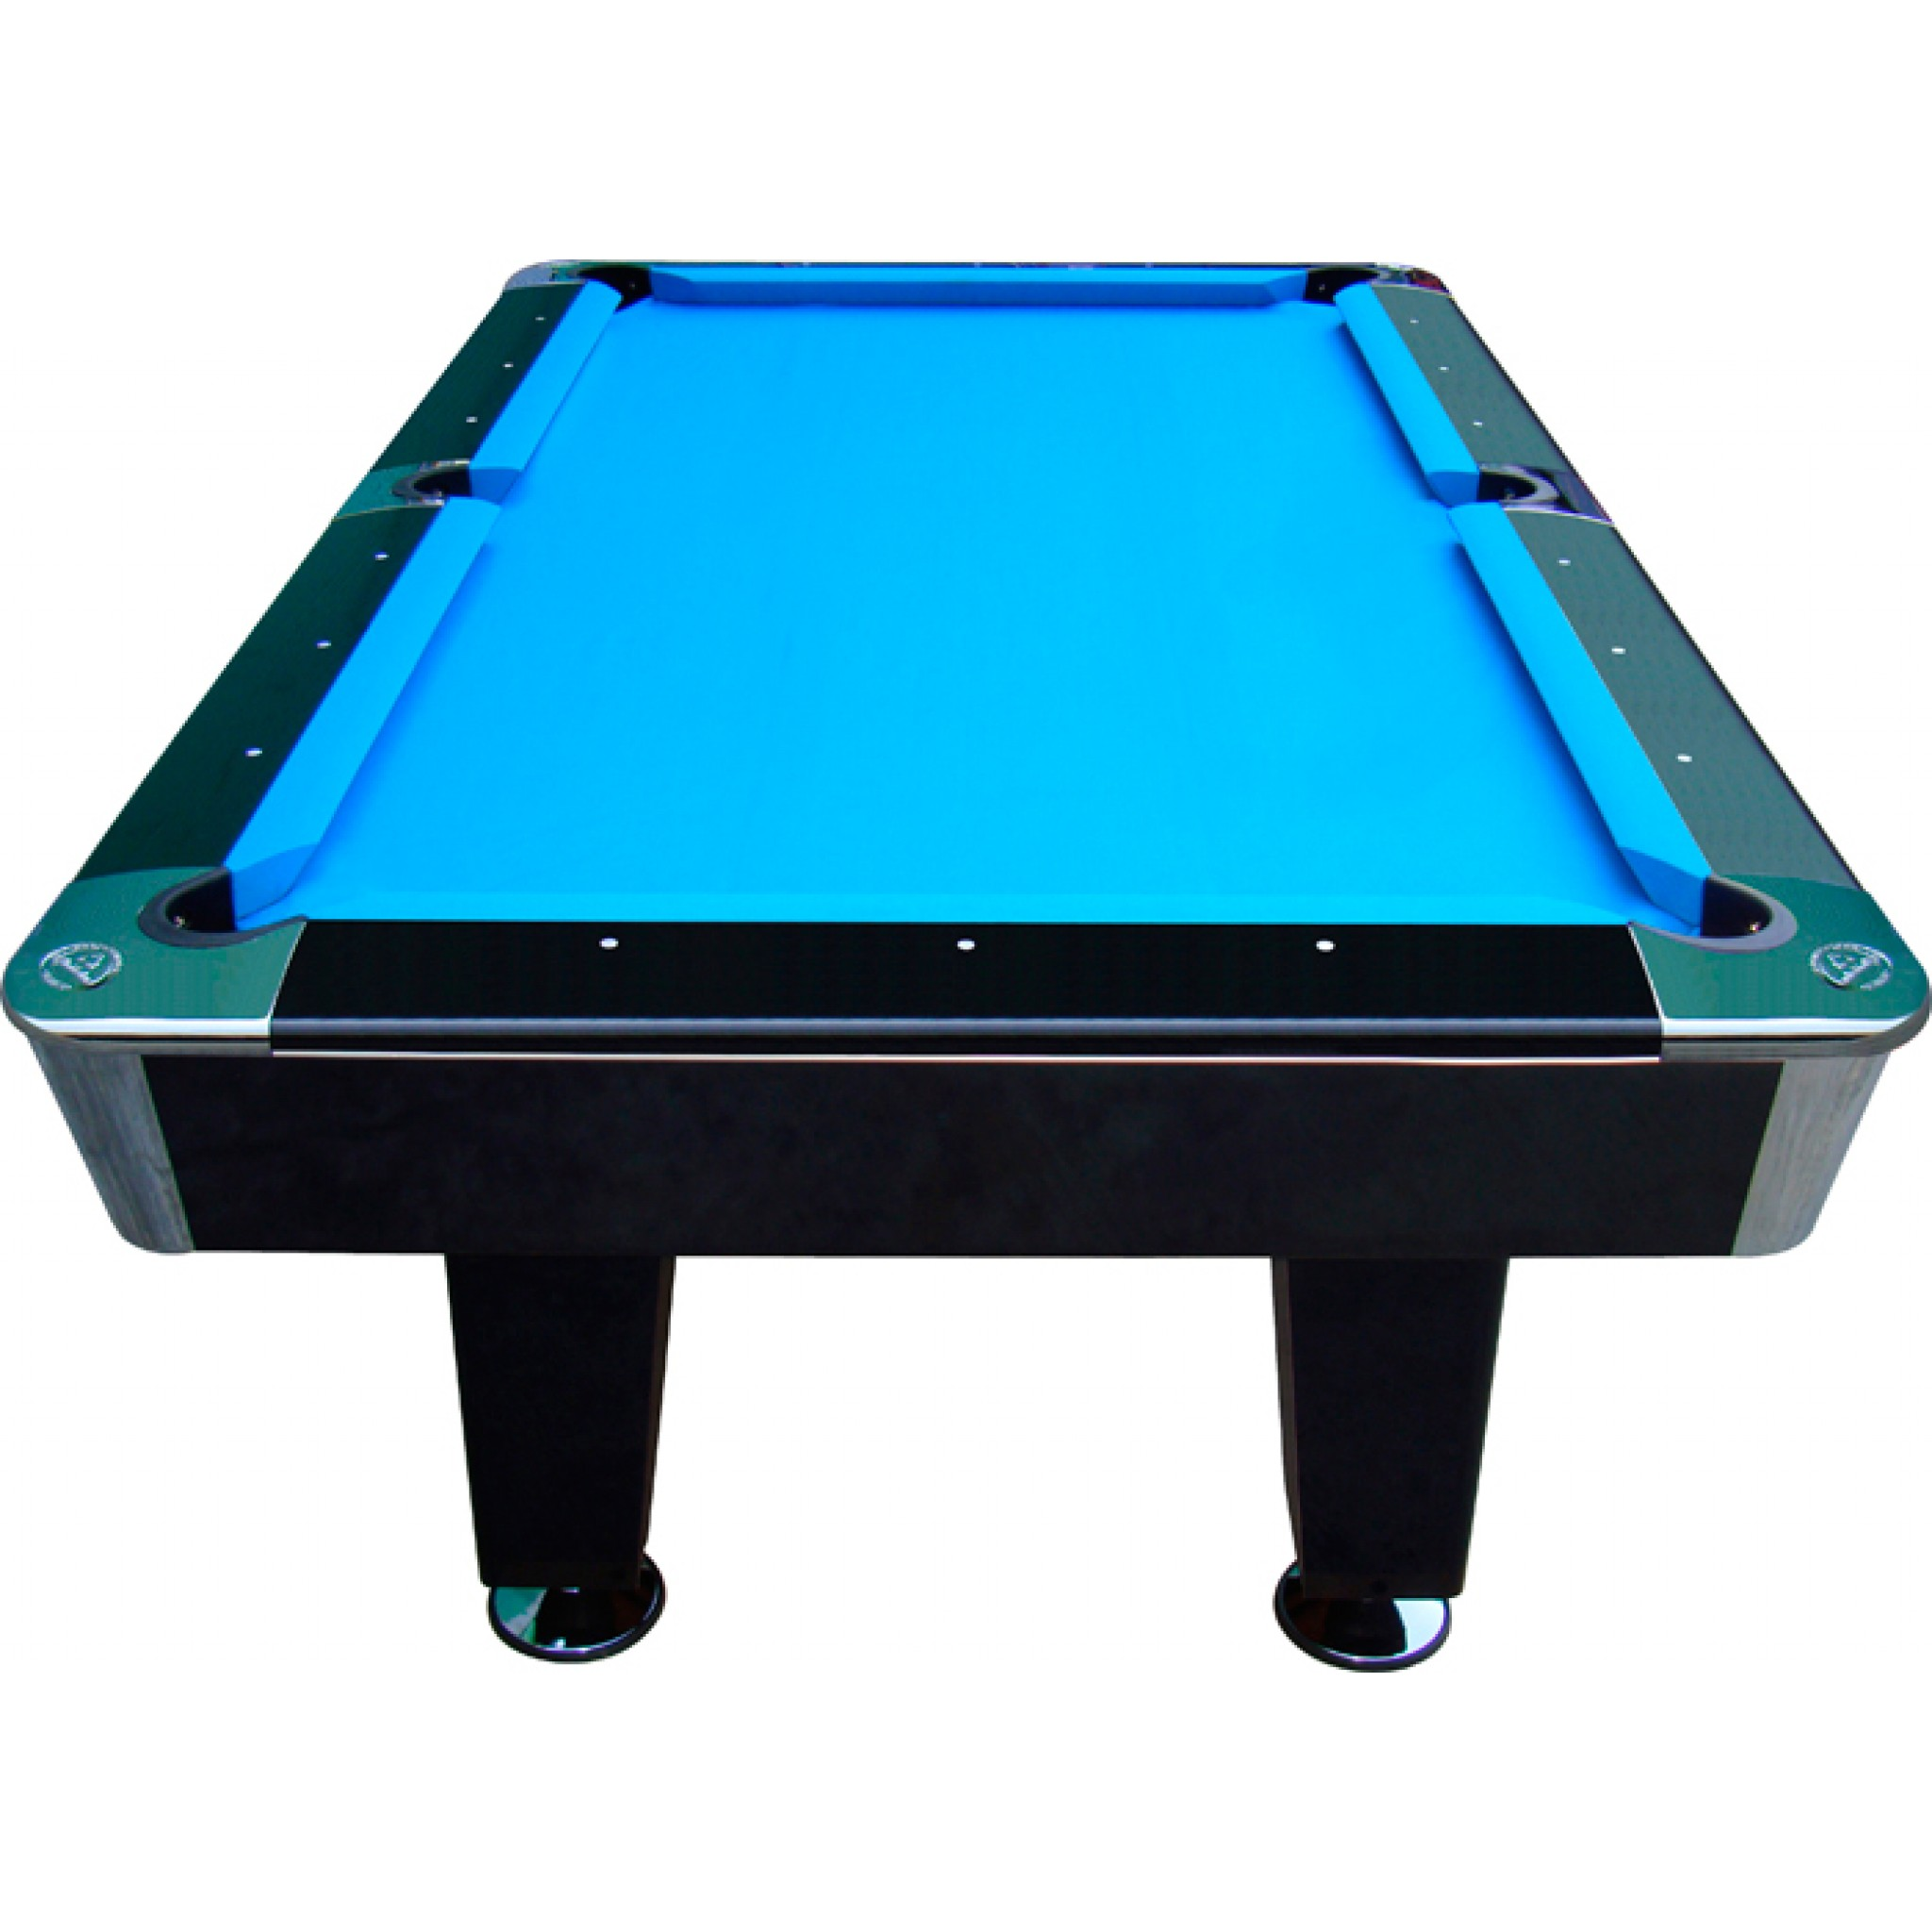 billiards and table tables foosball accessories pool furniture hattiesburg billiard